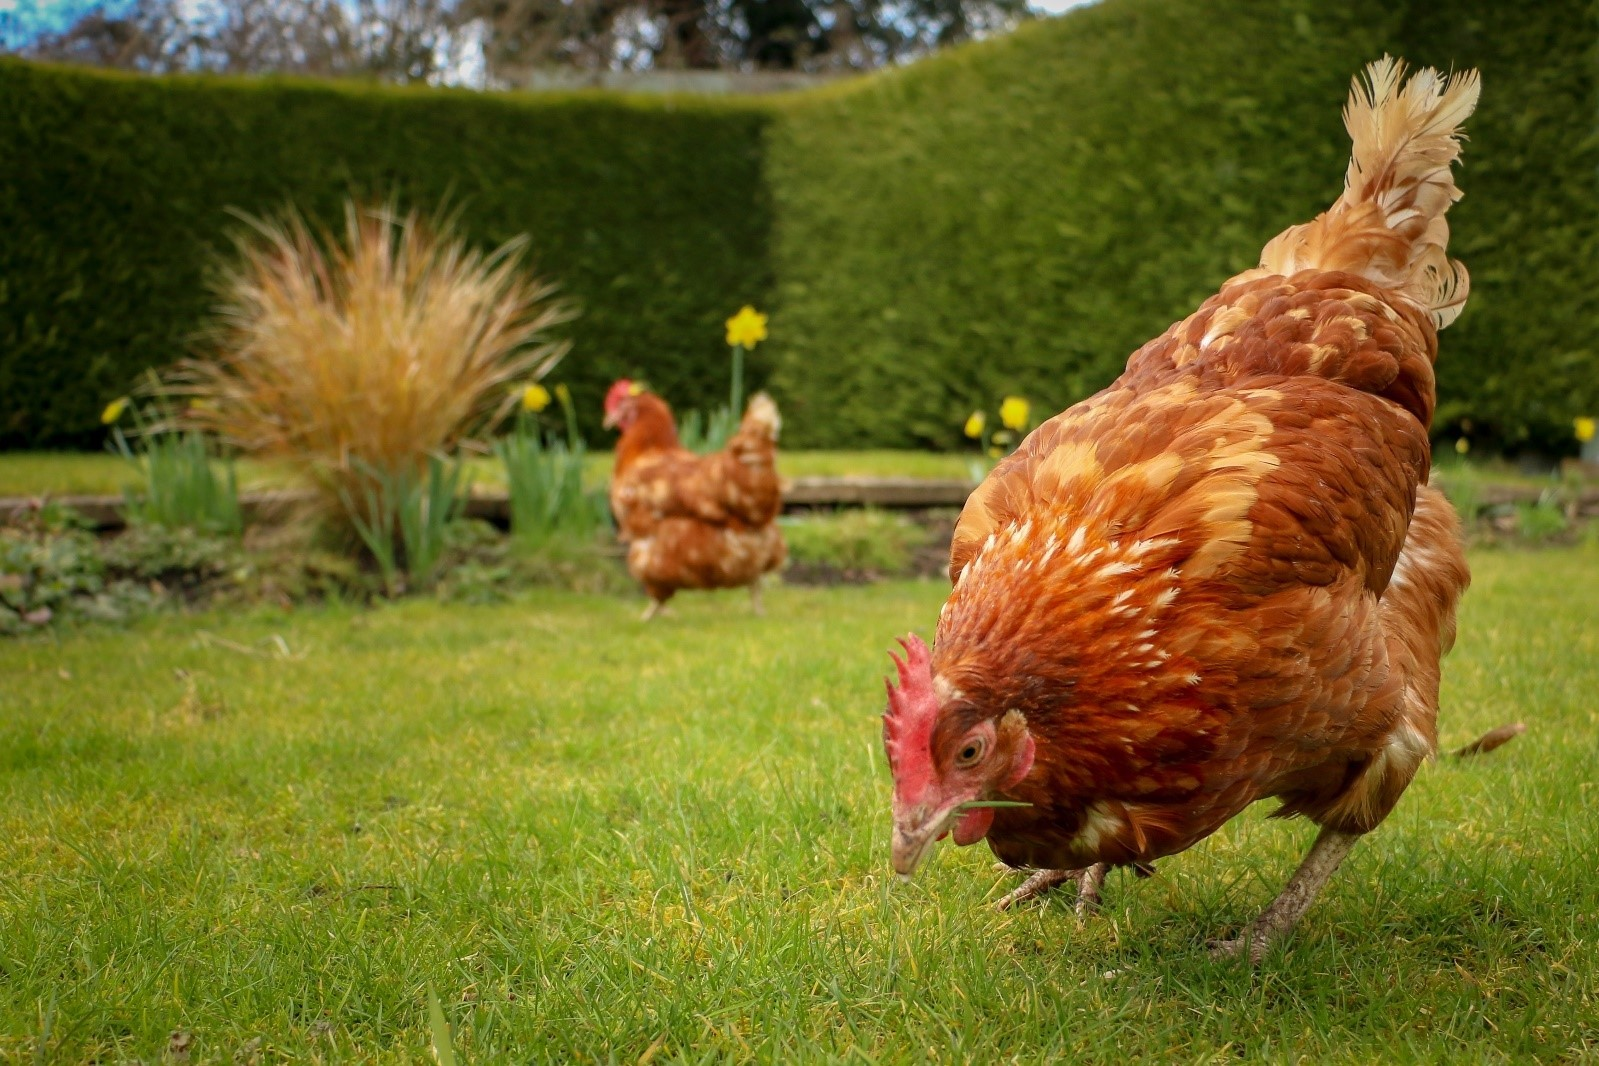 A lucky hen saved from the slaughterhouse and re-homed as a family pet